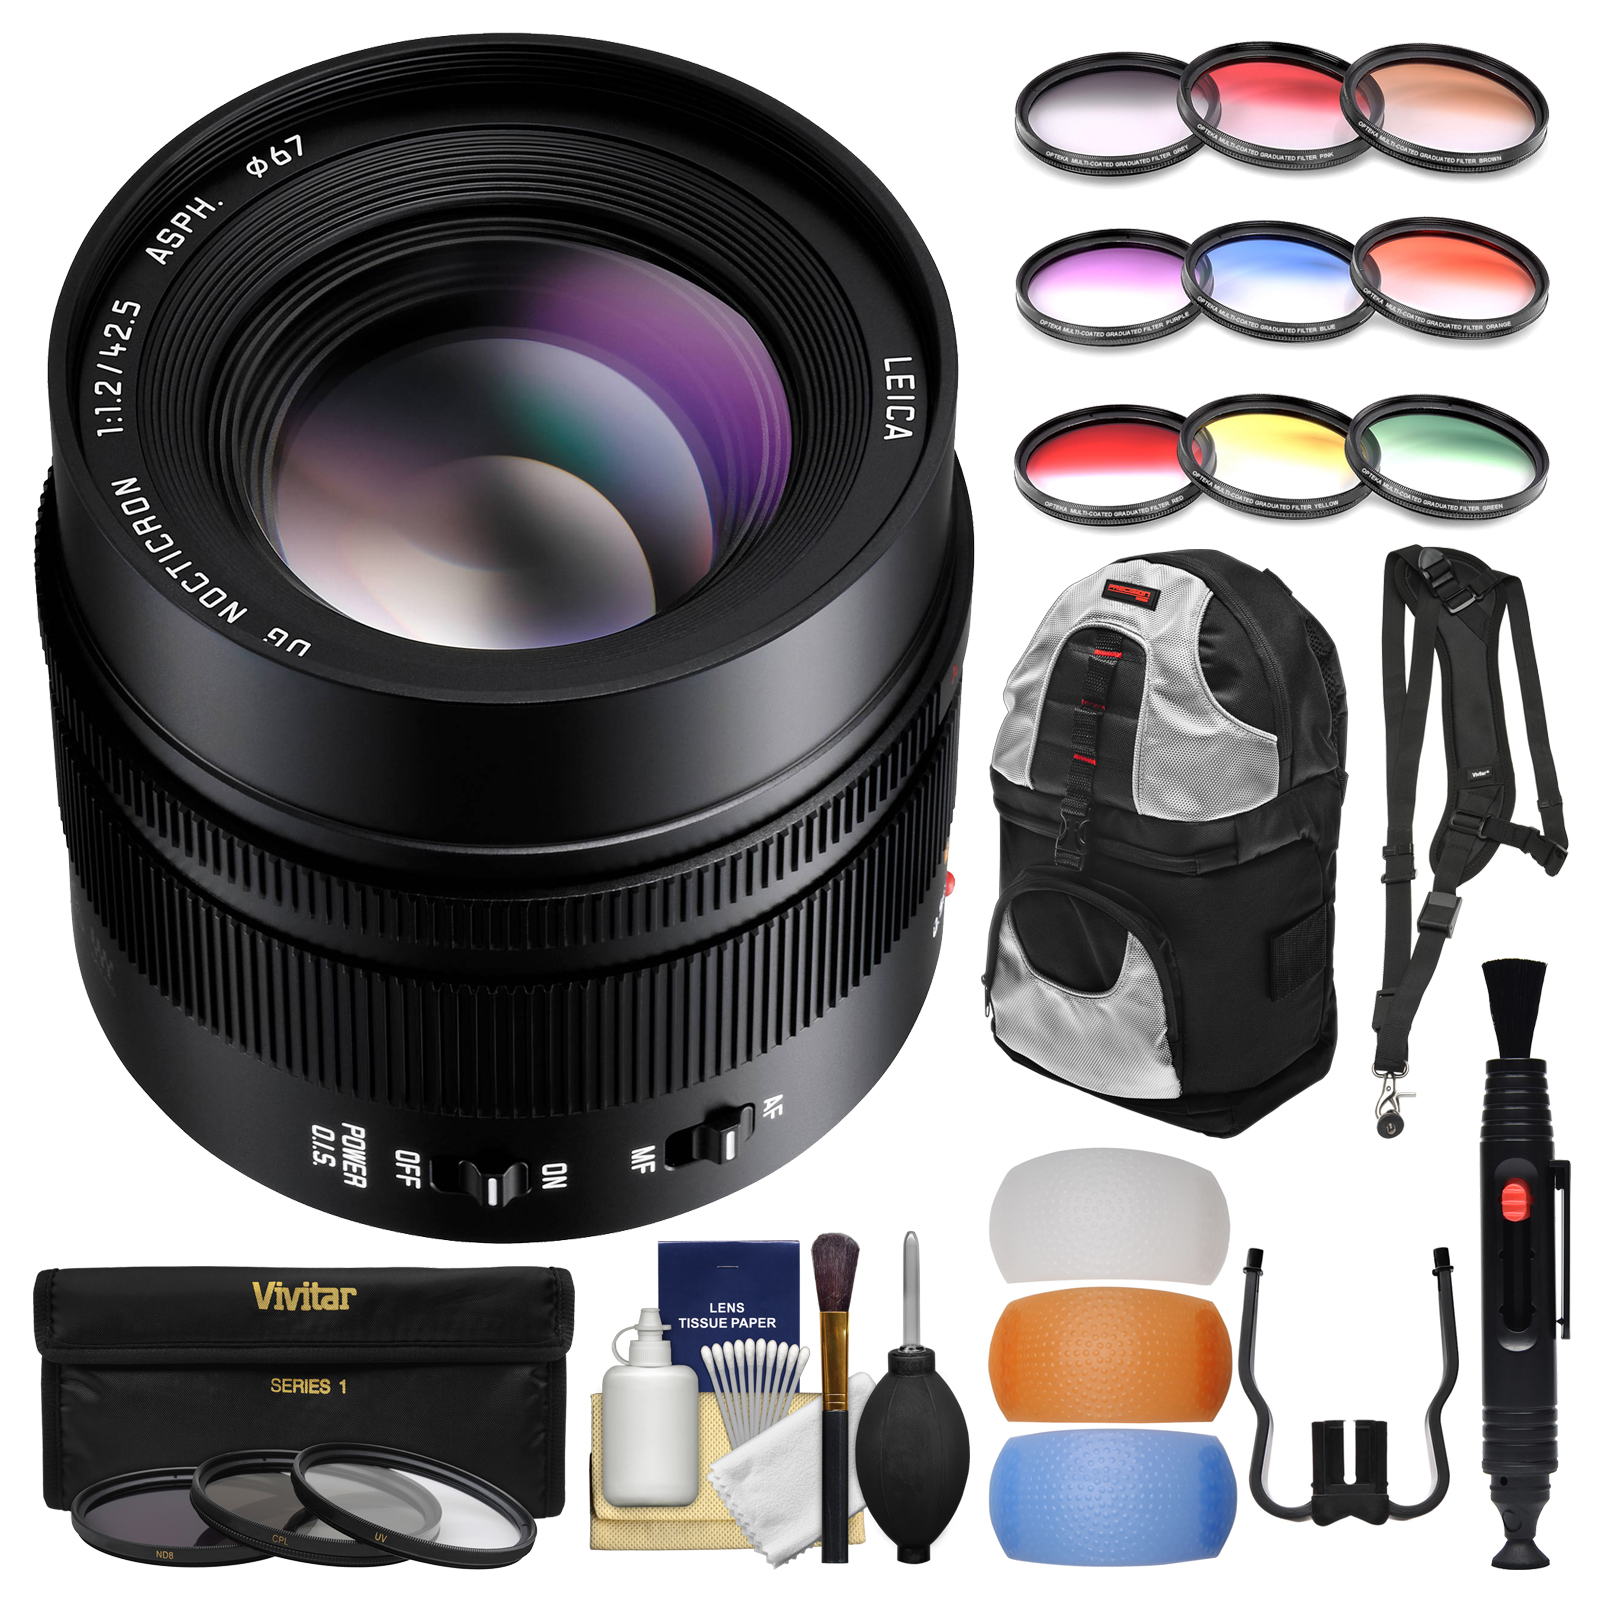 Panasonic Lumix G 42.5mm f/1.2 Leica DG Nocticron ASPH. Lens for G Series Cameras with Backpack + 3 UV/CPL/ND8 & 9 Colored Filters + Sling Strap + Kit